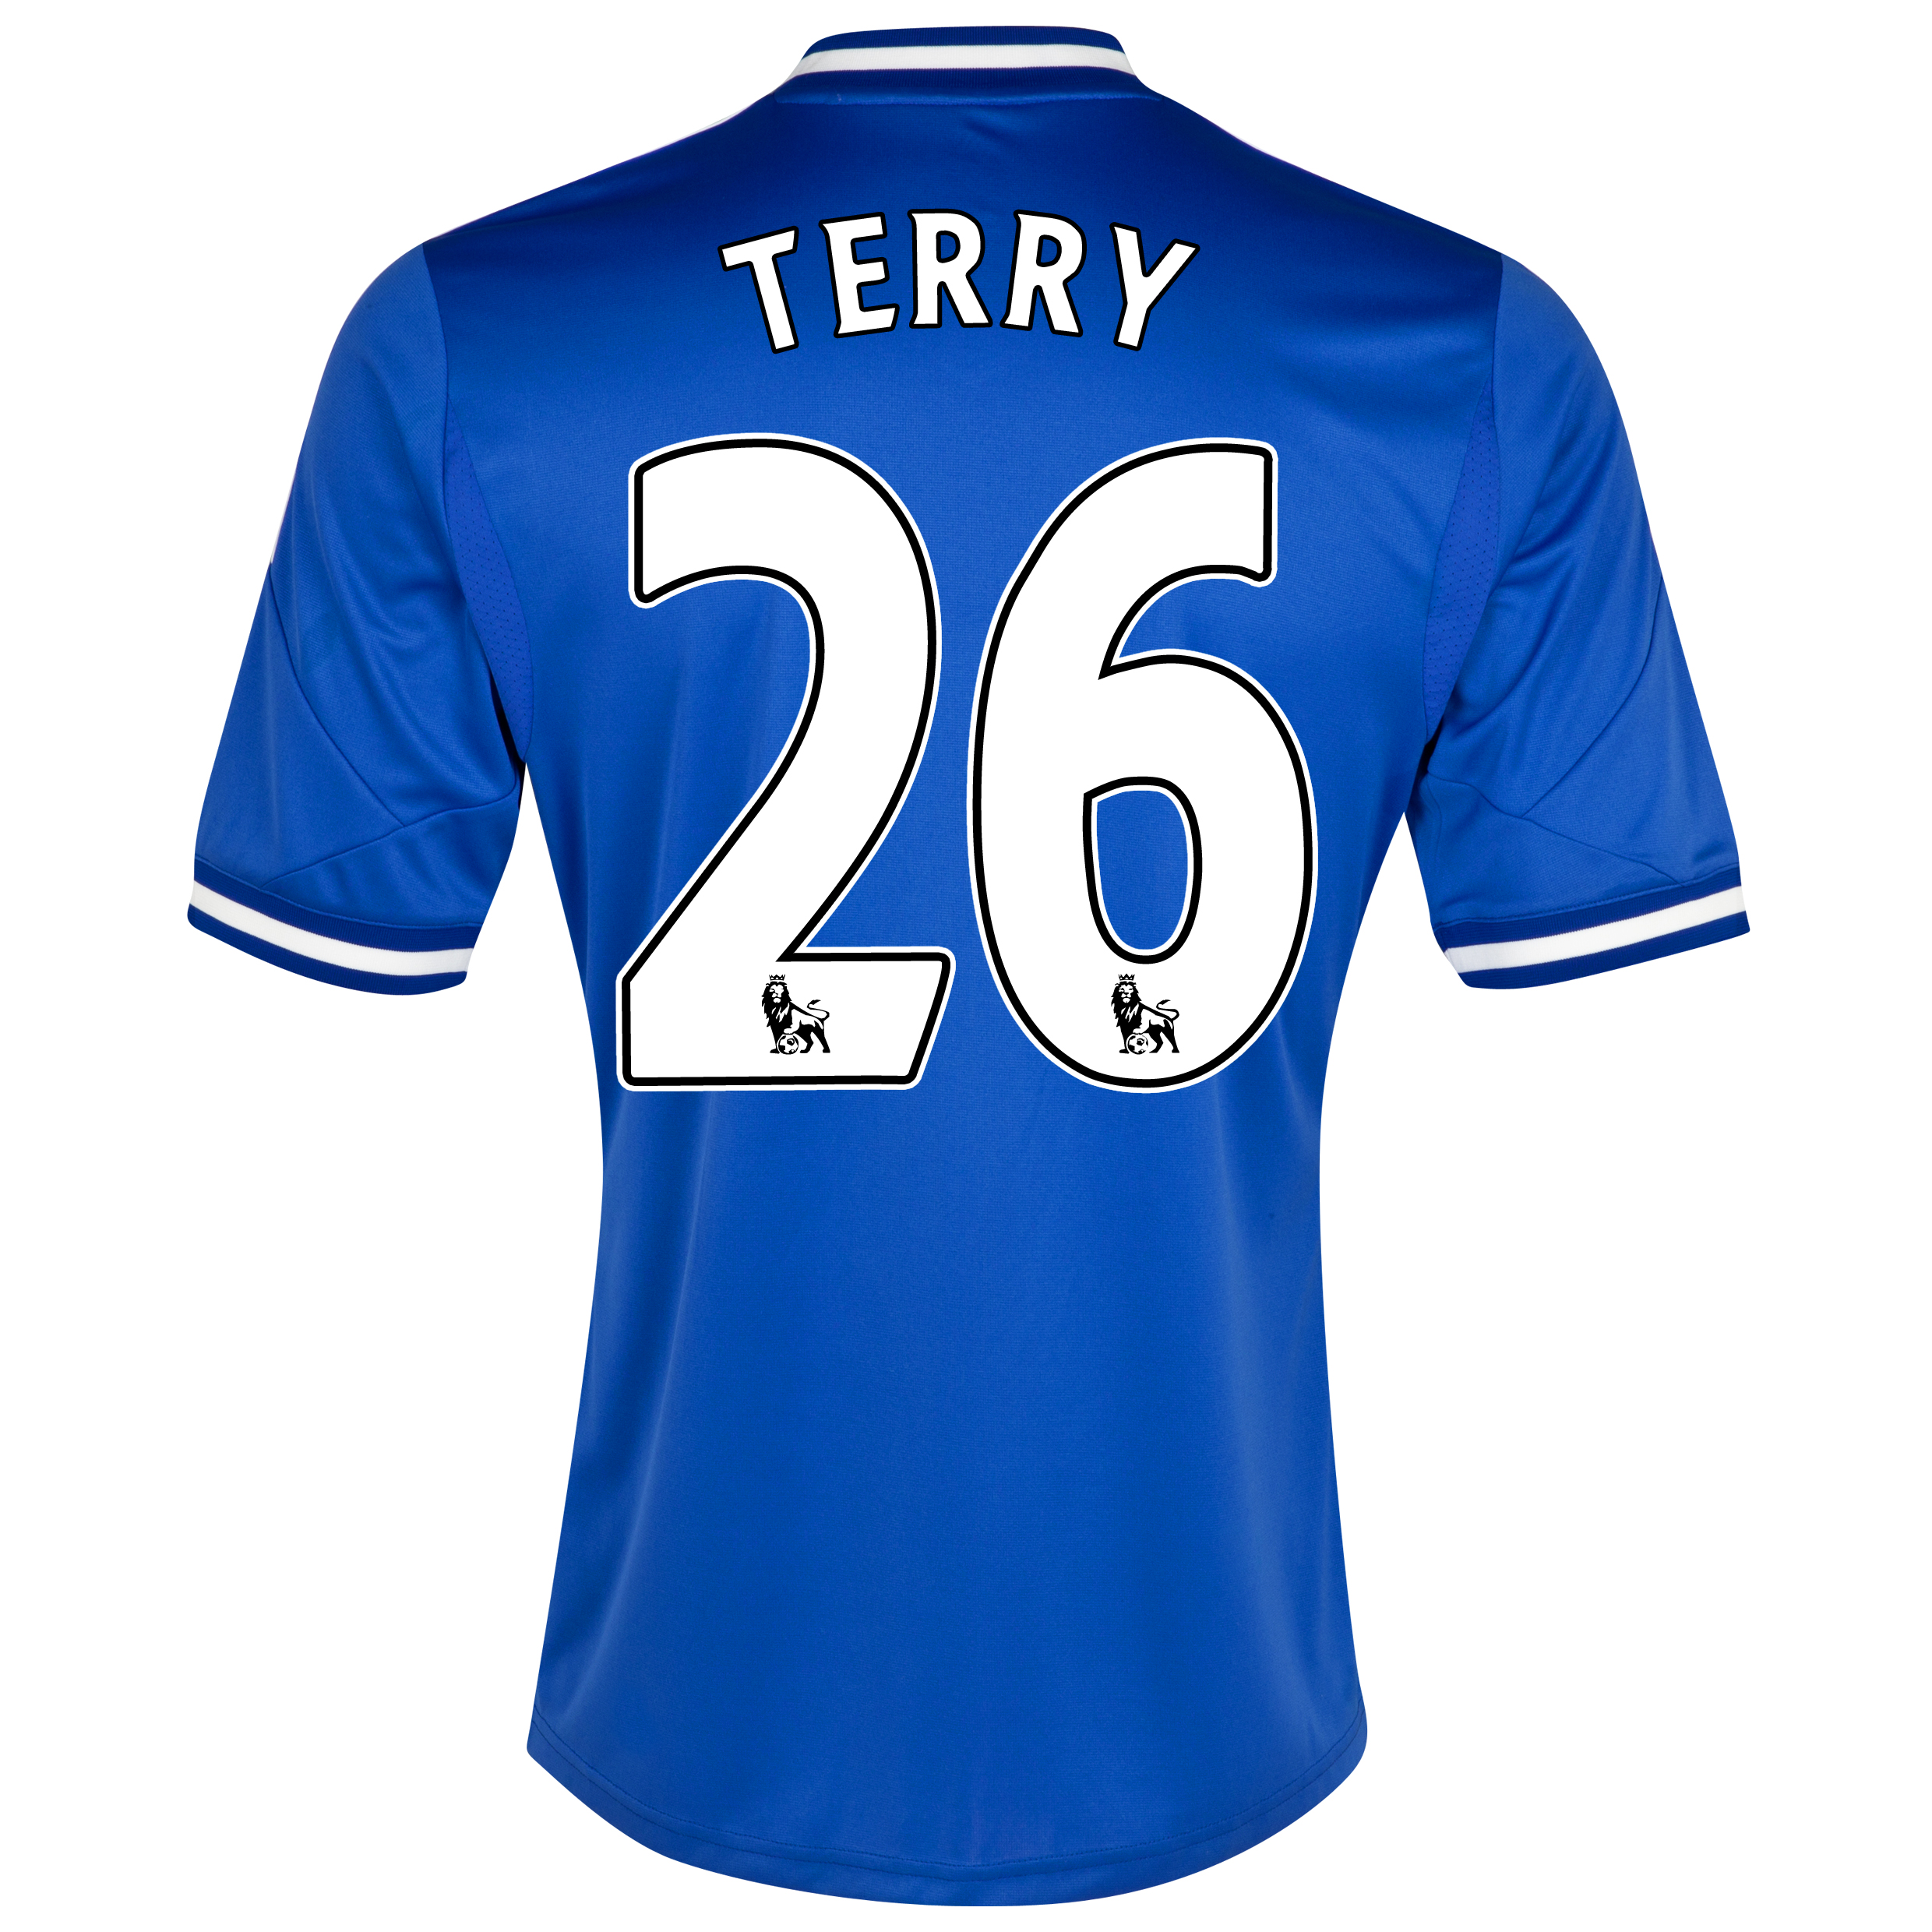 Chelsea Home Shirt 2013/14 - Kids with Terry 26 printing